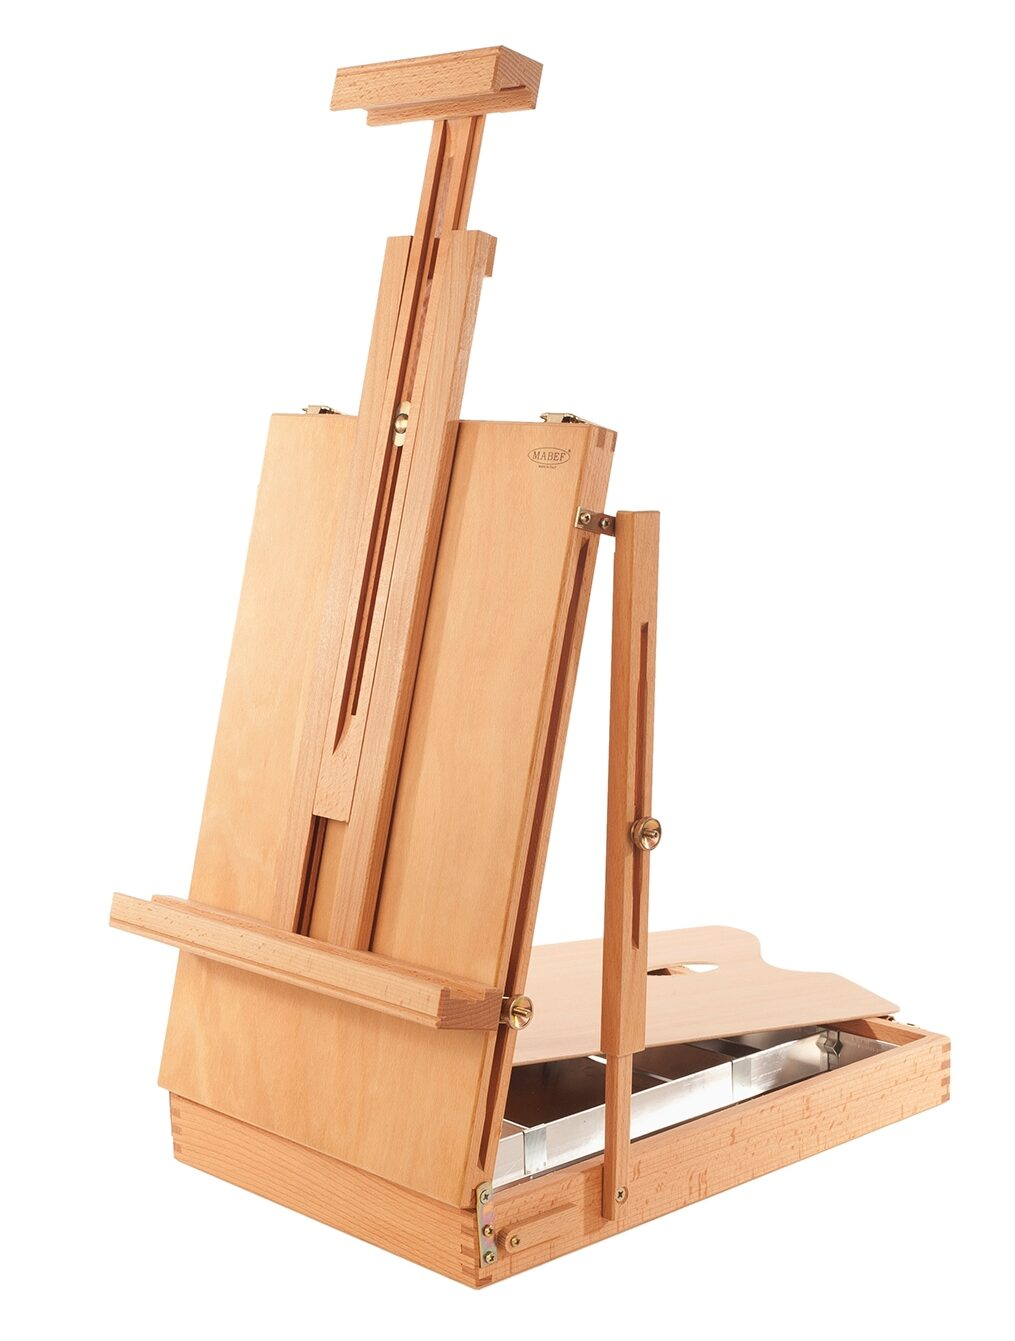 Mabef M-24 Table Box Easels are available via our warehouse and online at The PaintBox, home of the widest range of traditional and progressive Art Supplies in Adelaide. At The PaintBox we source and stock quality art supplies which we import directly. This means that you have access to a greater variety and pay less. These are perfect for any artists from amateur to professional. They are also perfect for any budget size. Check out our loyalty rewards programme, which makes your artistic ambitions achievable. At these prices why not give these a go. Be sure to check out our other fabulous finds on our website and start saving today. Our knowledgeable staff at The PaintBox can guide you through our carefully selected ranges of art supplies for all applications. This is only a small selection of our stock. We sell many brands, weights, and textures, in-store only. Please call 08 8388 7776 to enquire. We offer art tuition too!